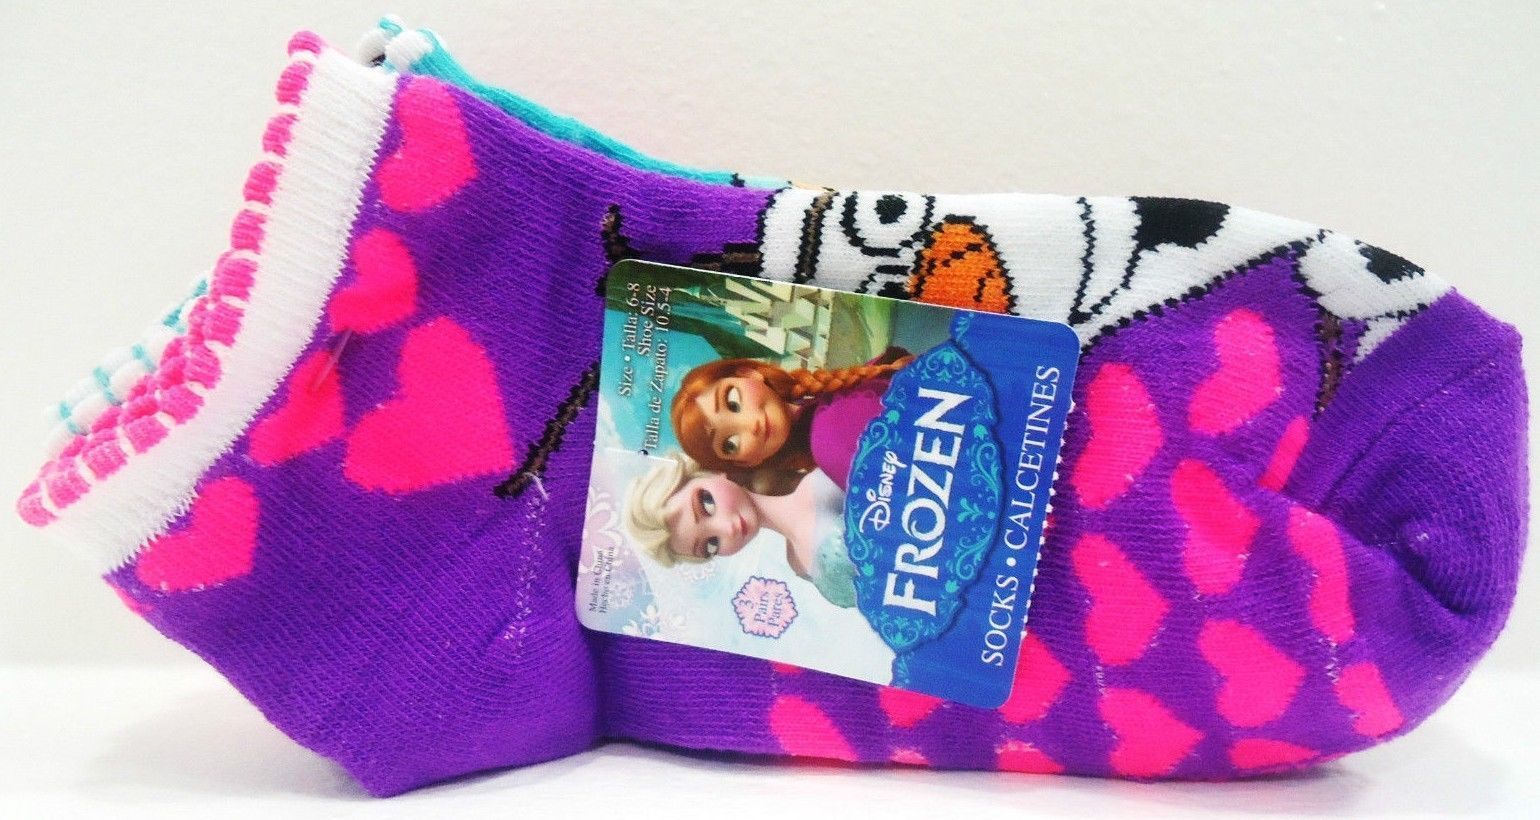 DISNEY - FROZEN - GIRL'S - (3) PACK - SOCKS - PURPLE - PINK - AQUA - BRAND NEW image 3